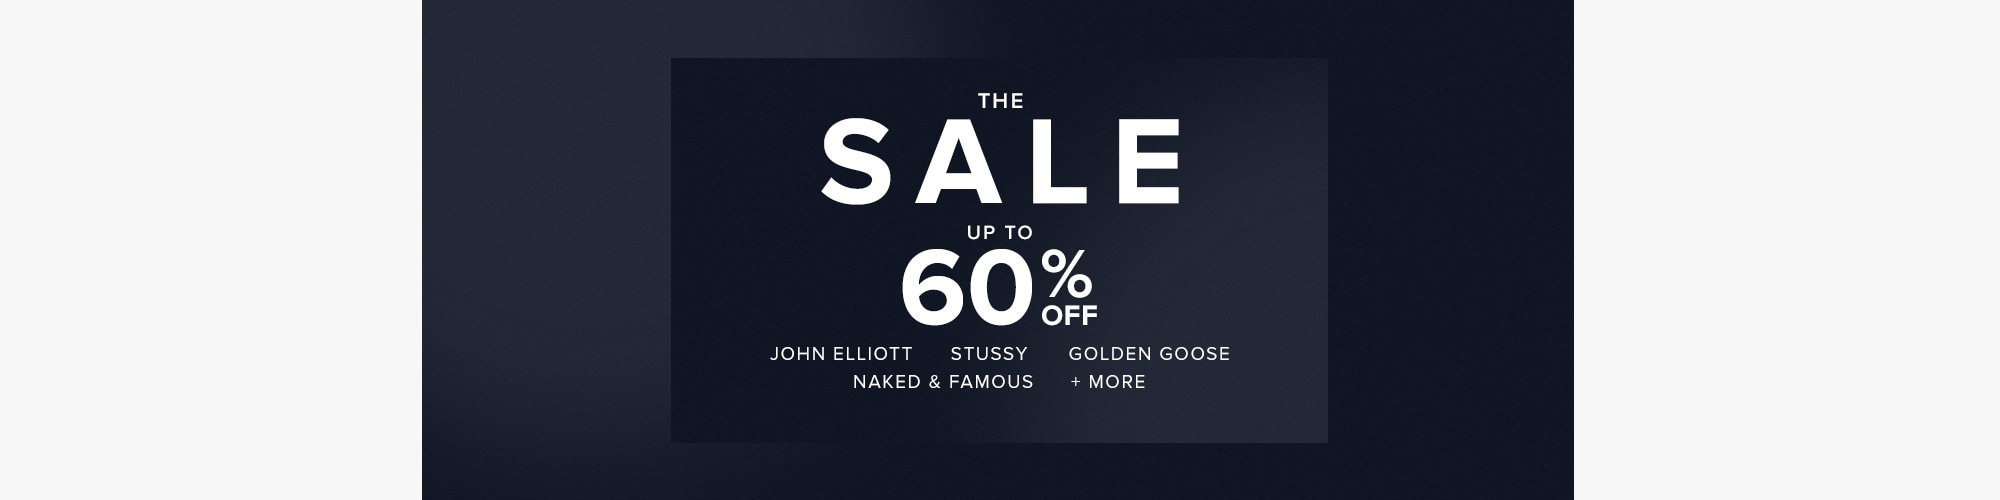 The Sale up to 60% Off, Shop the sale